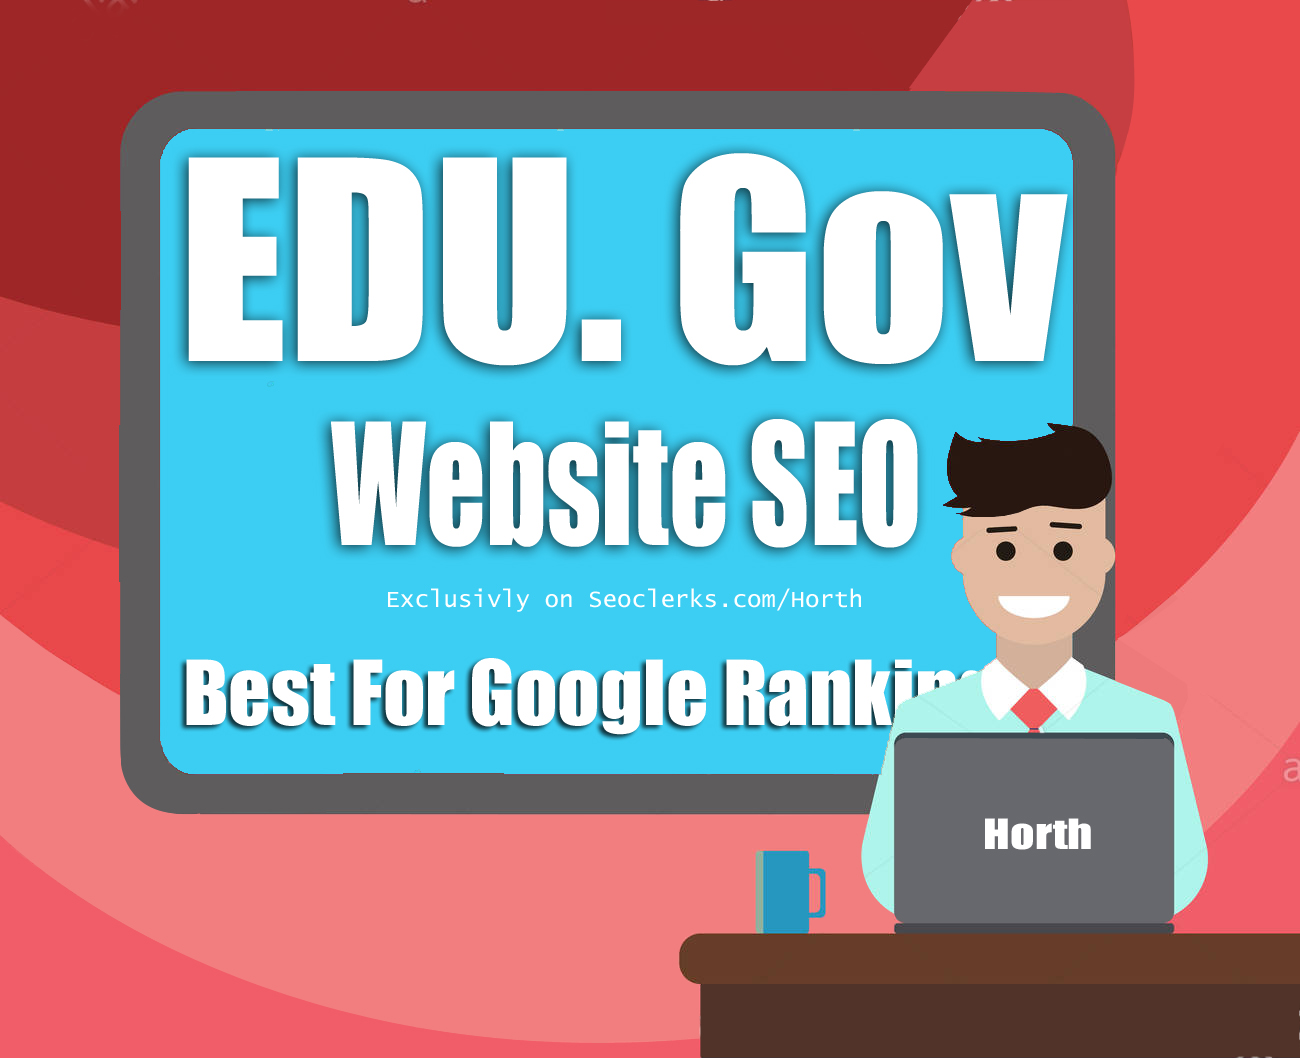 Powerful 900. EDU Backlink from education sites best for website seo with google ranking top page